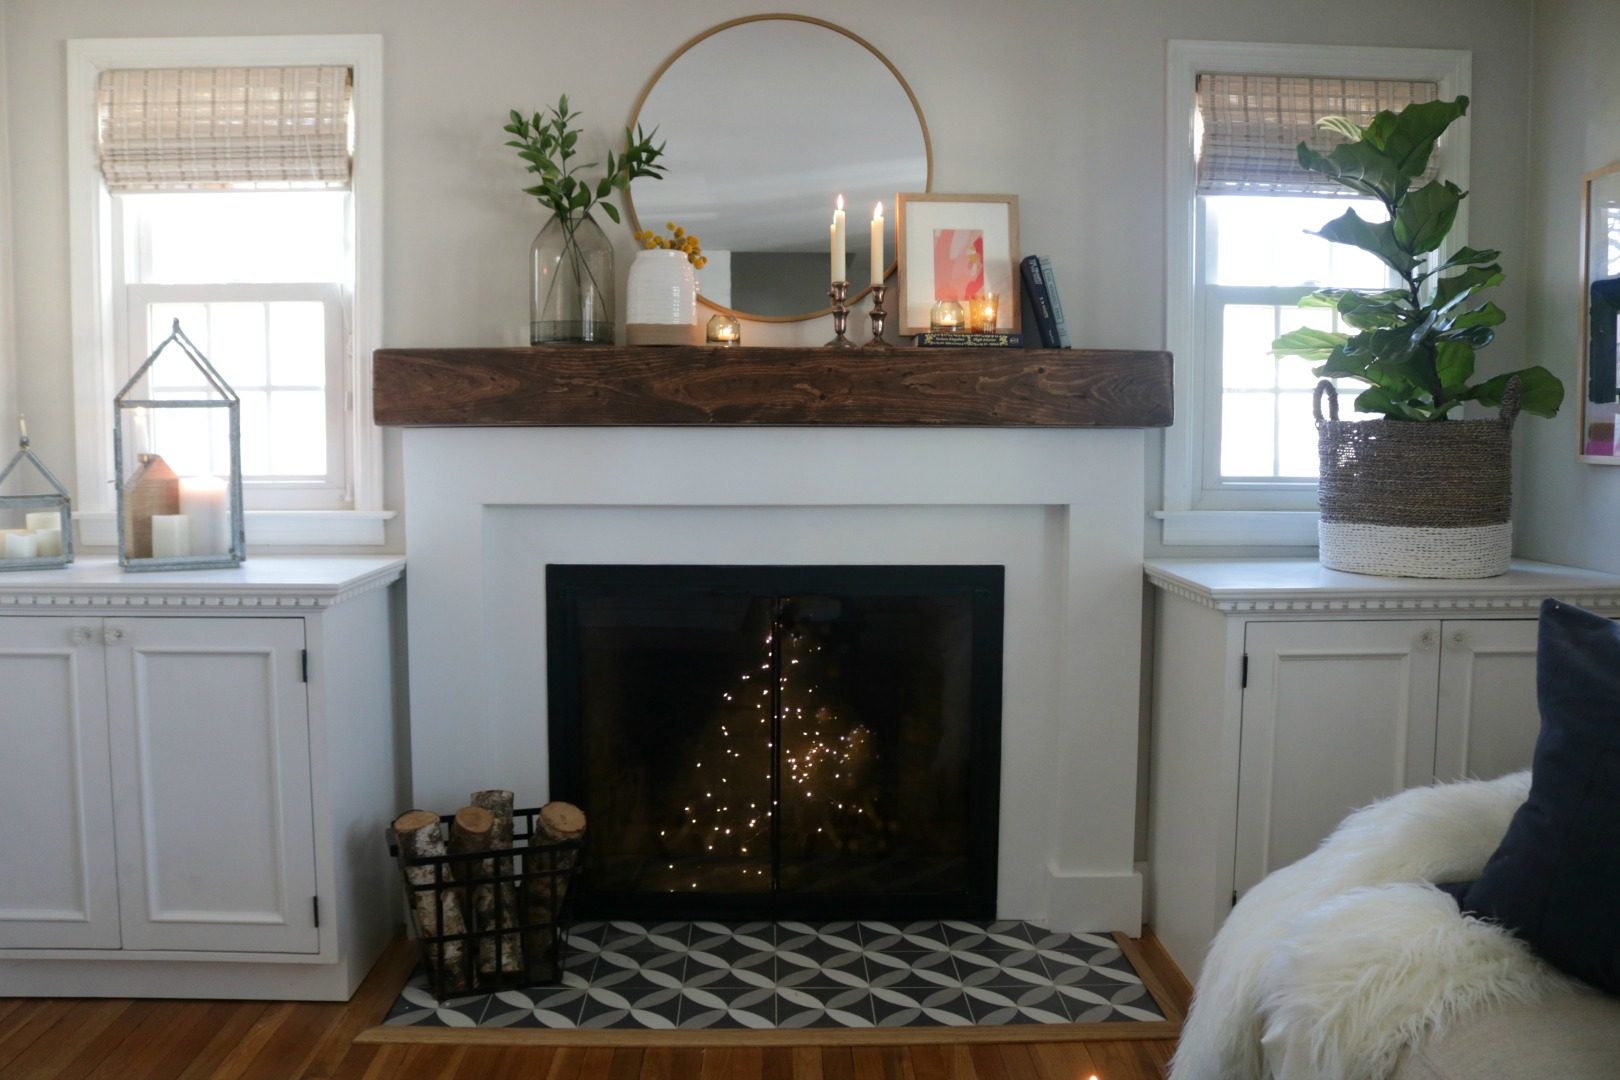 Tile Around Fireplace Ideas Fireplace Makeover And Styled With Decor From Target Nesting